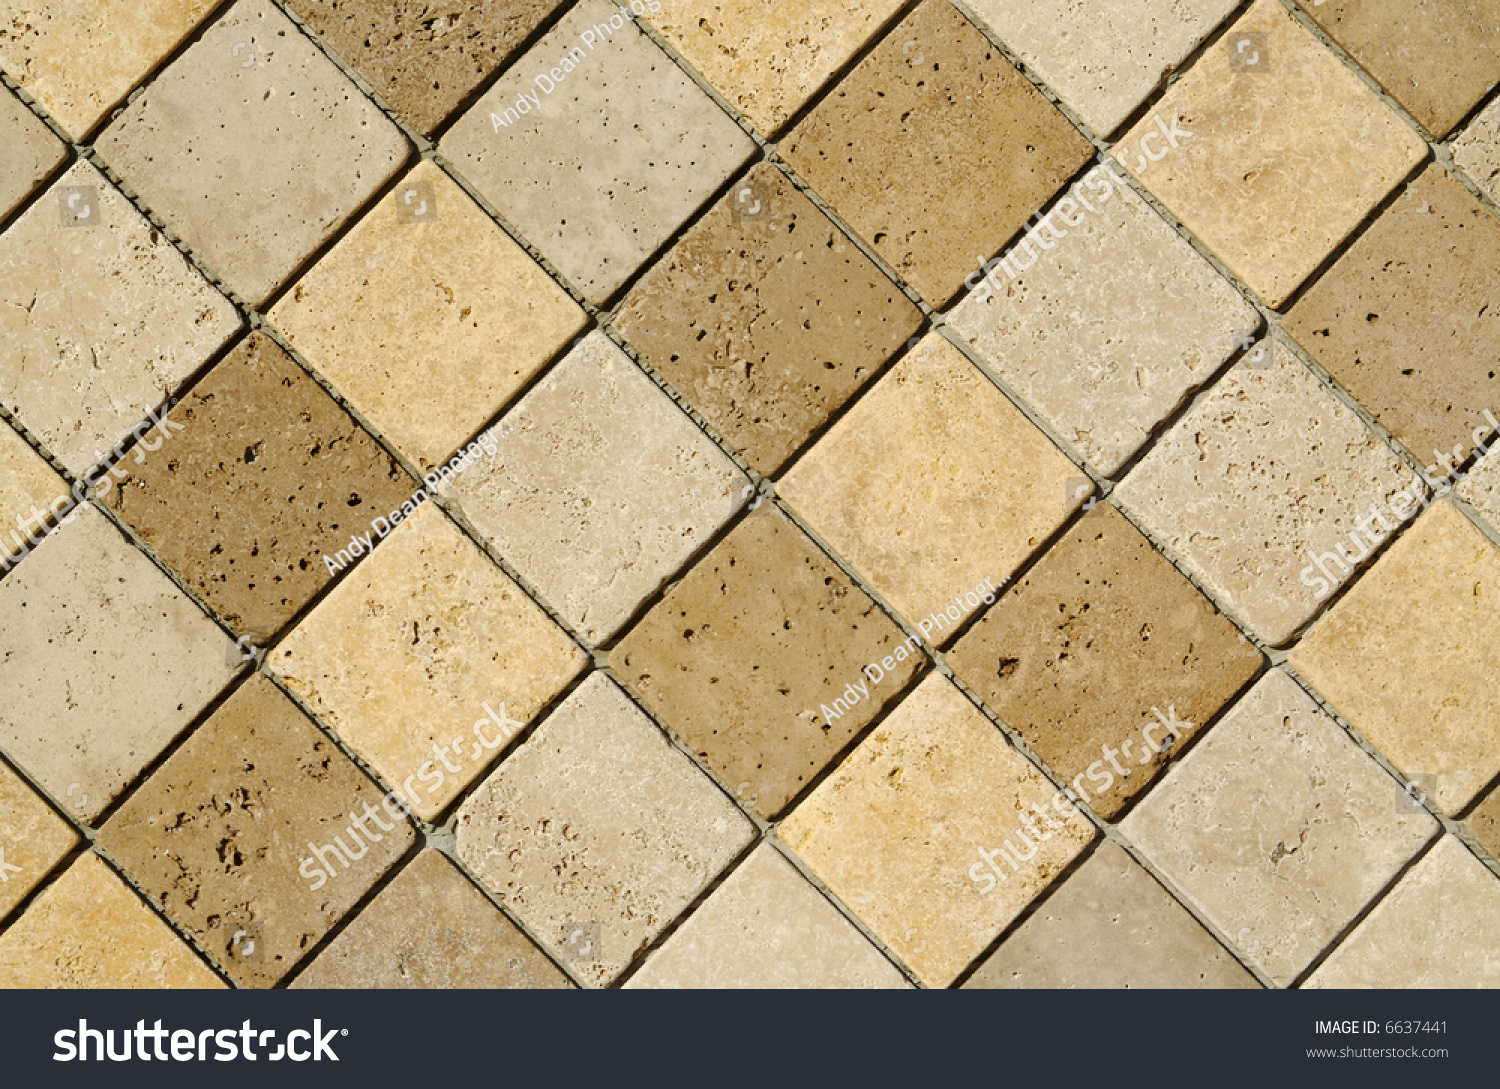 freshly laid decorative wall tiles preview save to a lightbox - Decorative Wall Tiles